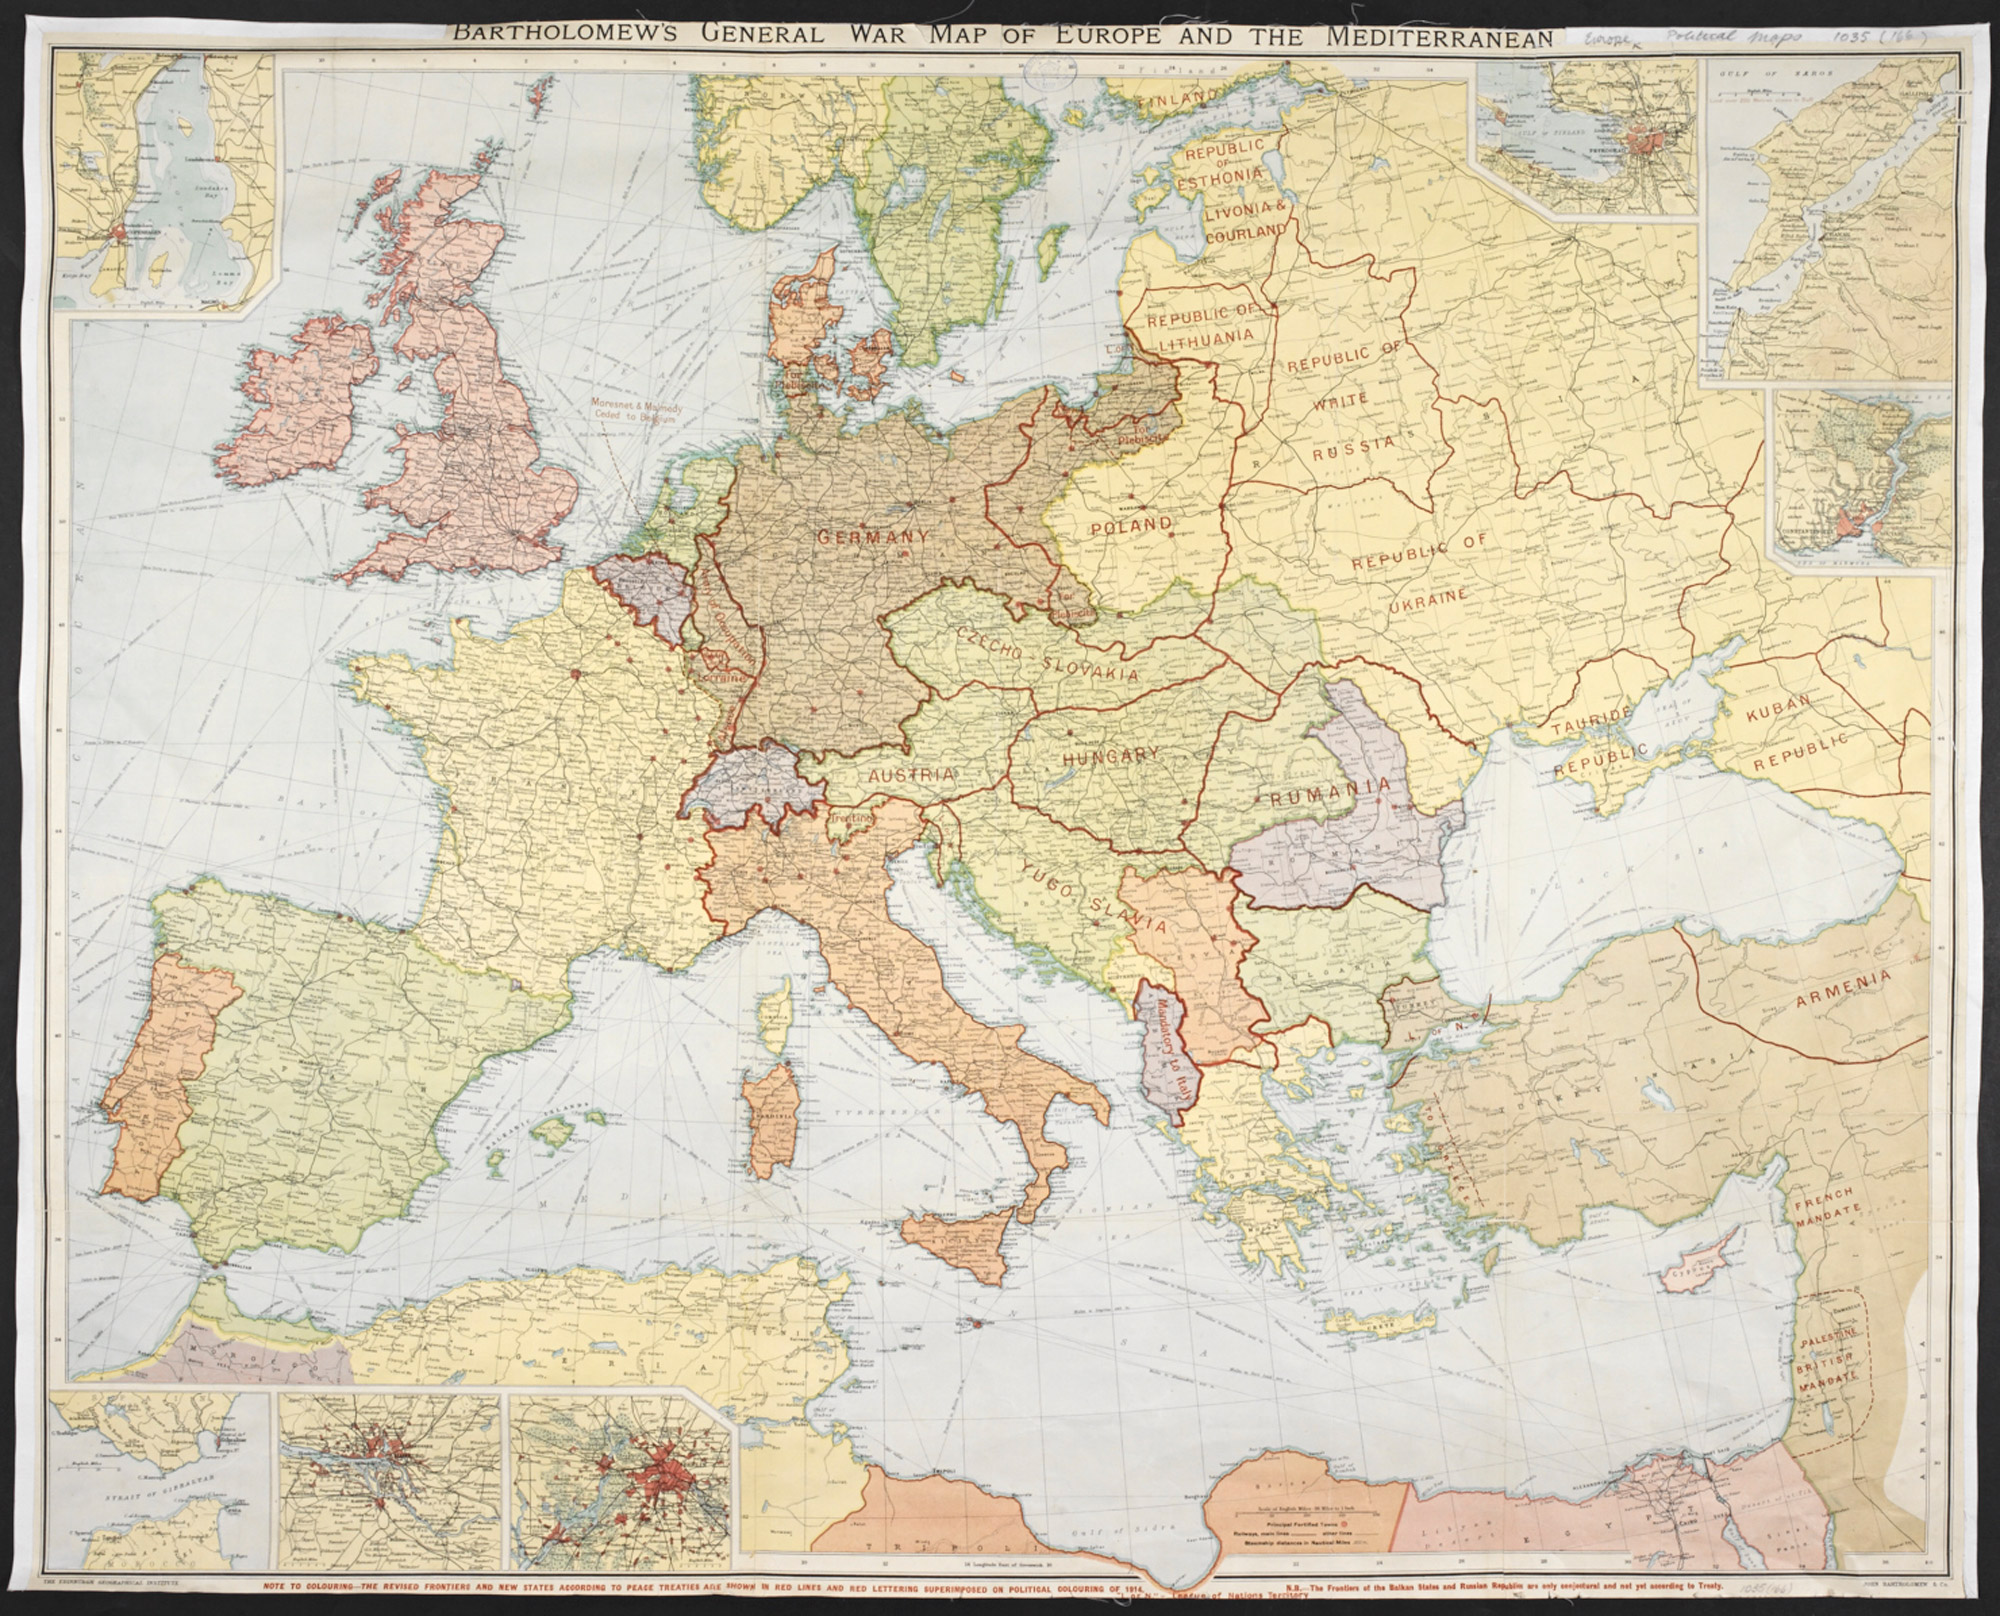 Mediterranean Political Map.Bartholomew S General War Map Of Europe And The Mediterranean